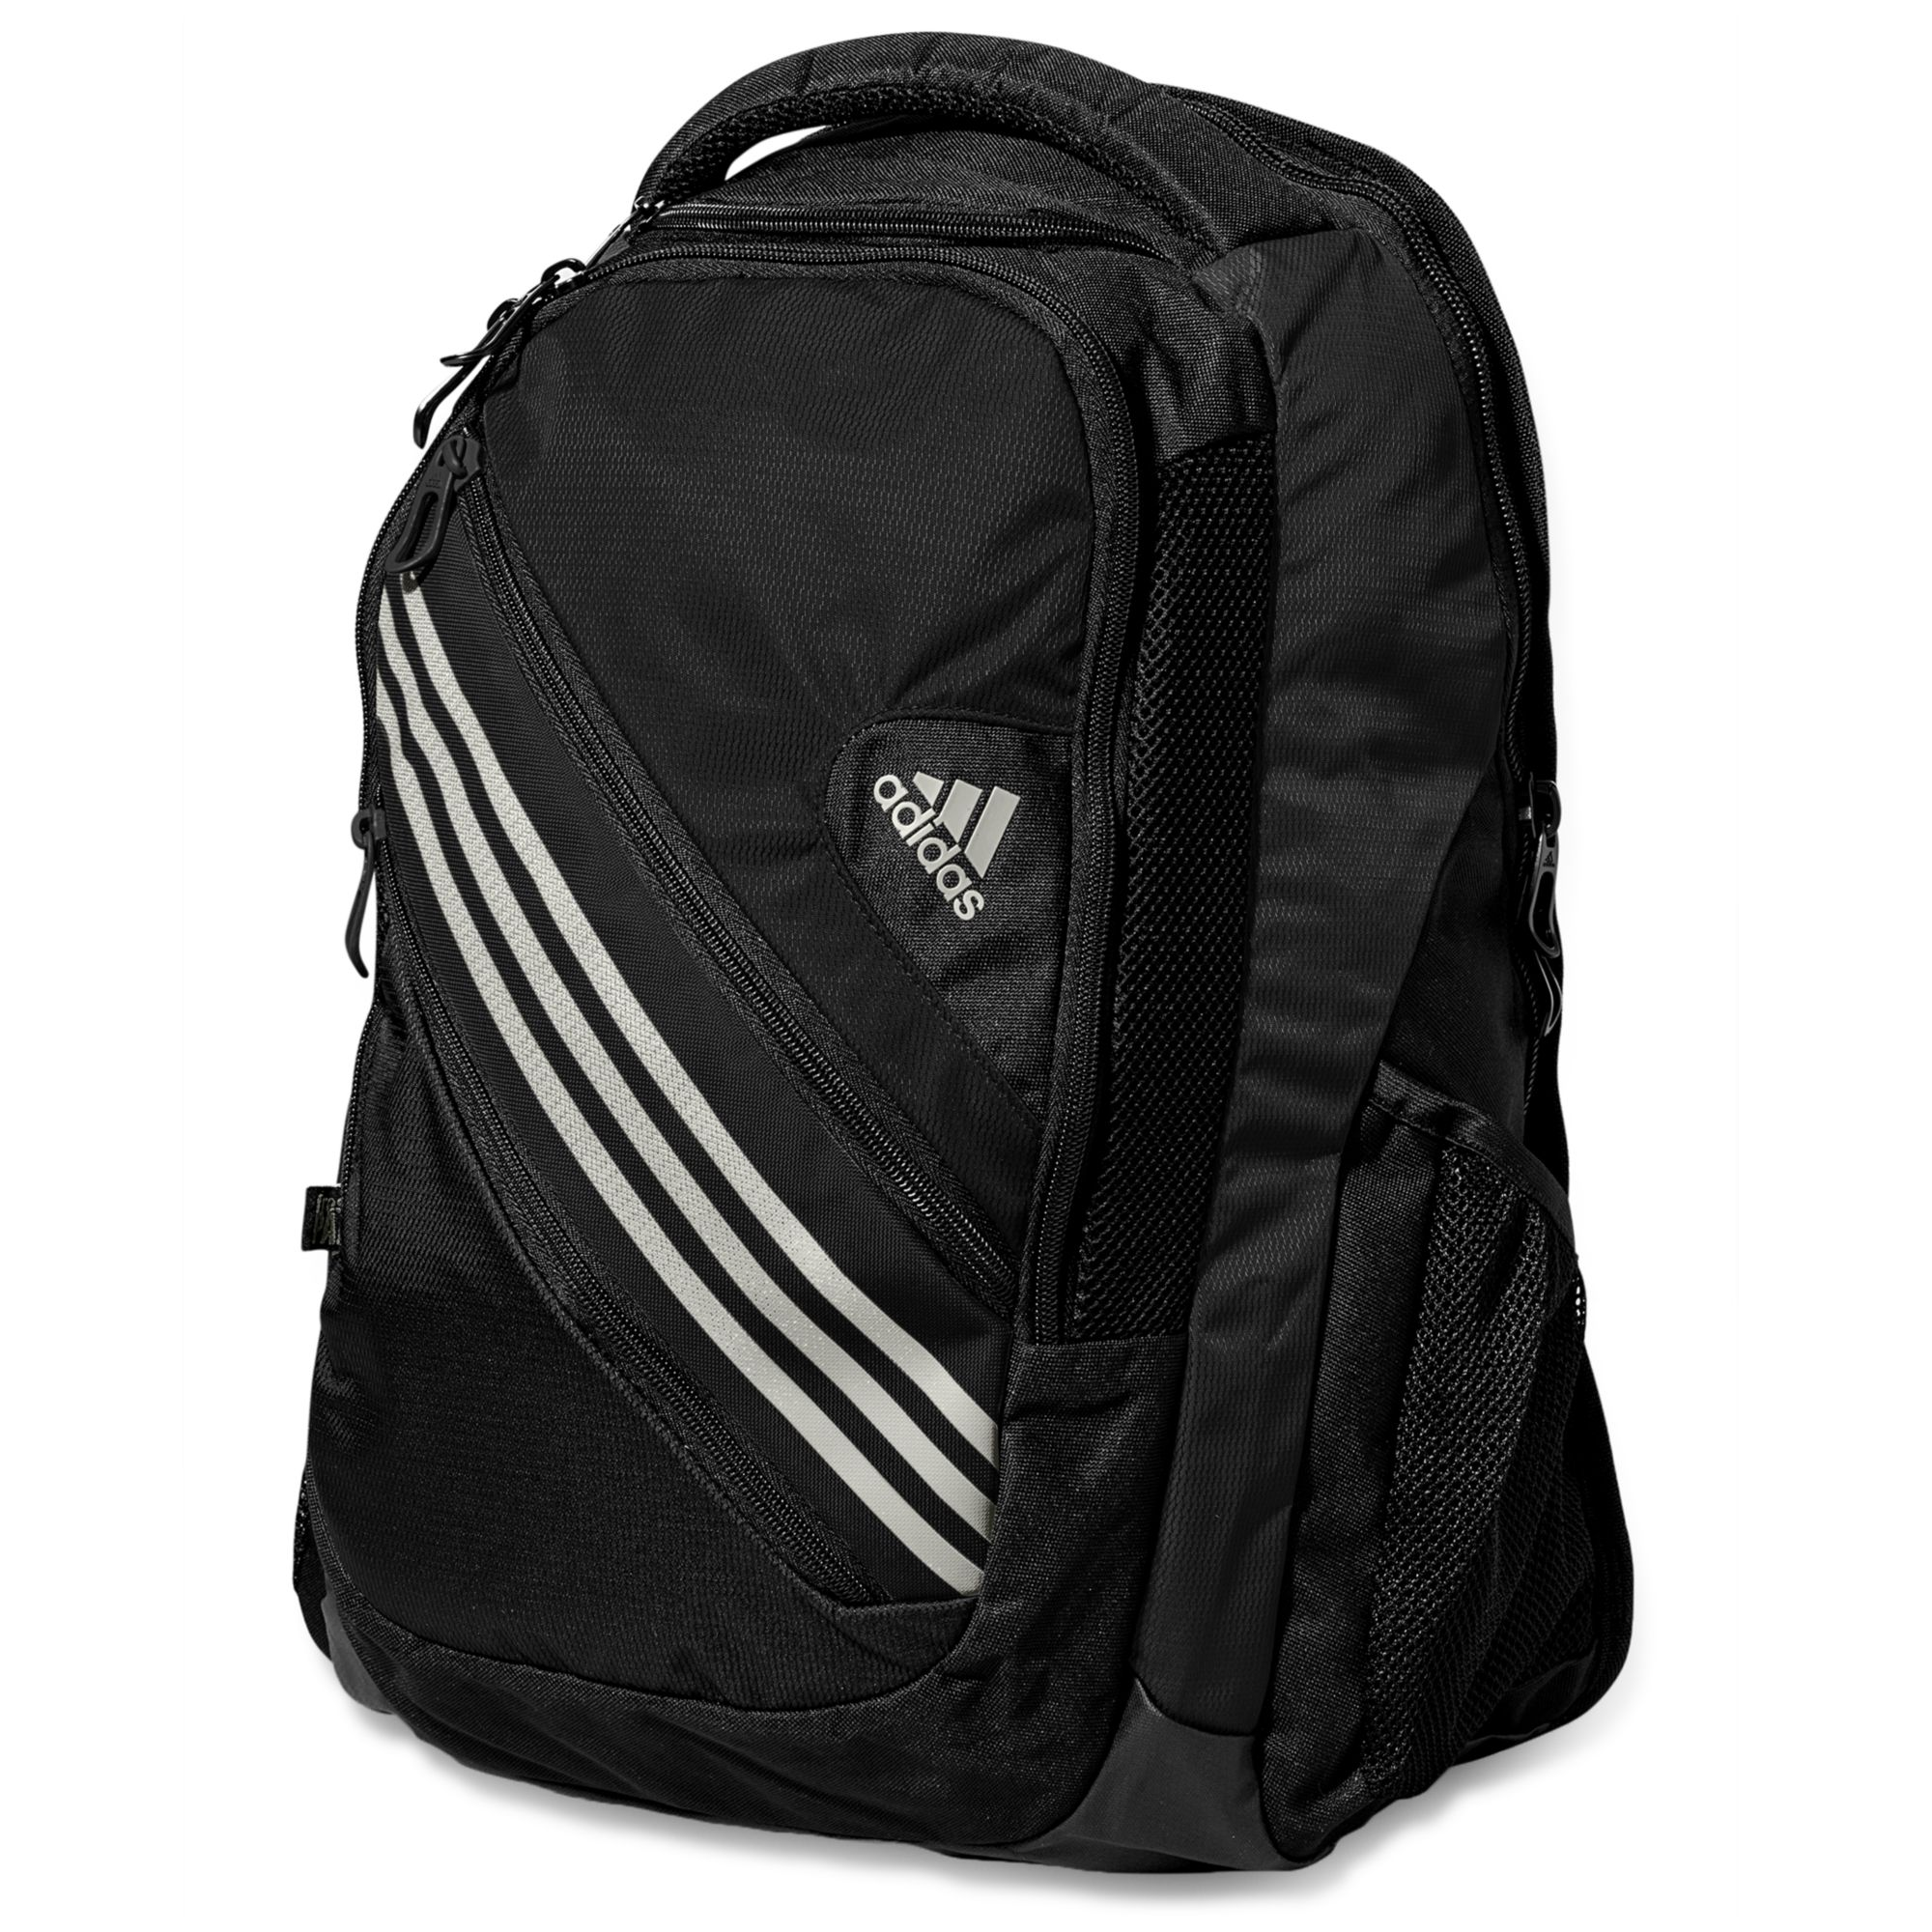 9fd29379c8ba Lyst - adidas Climacool Speed Iii Backpack in Black for Men